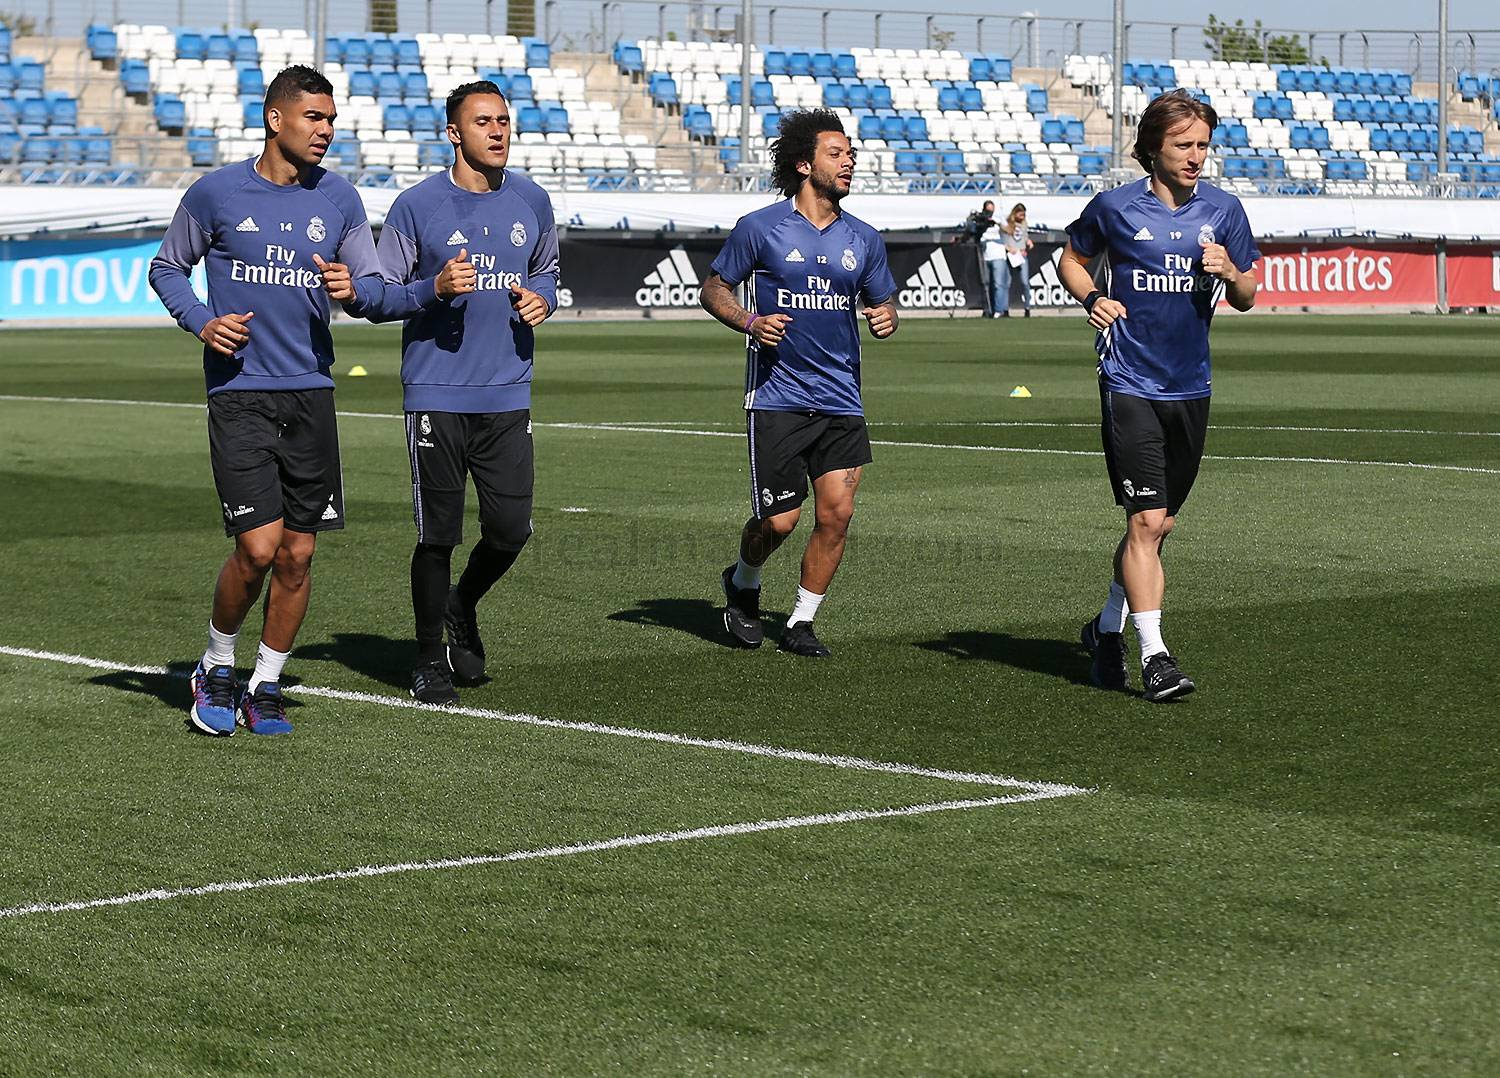 Real Madrid - Entrenamiento del Real Madrid - 09-04-2017